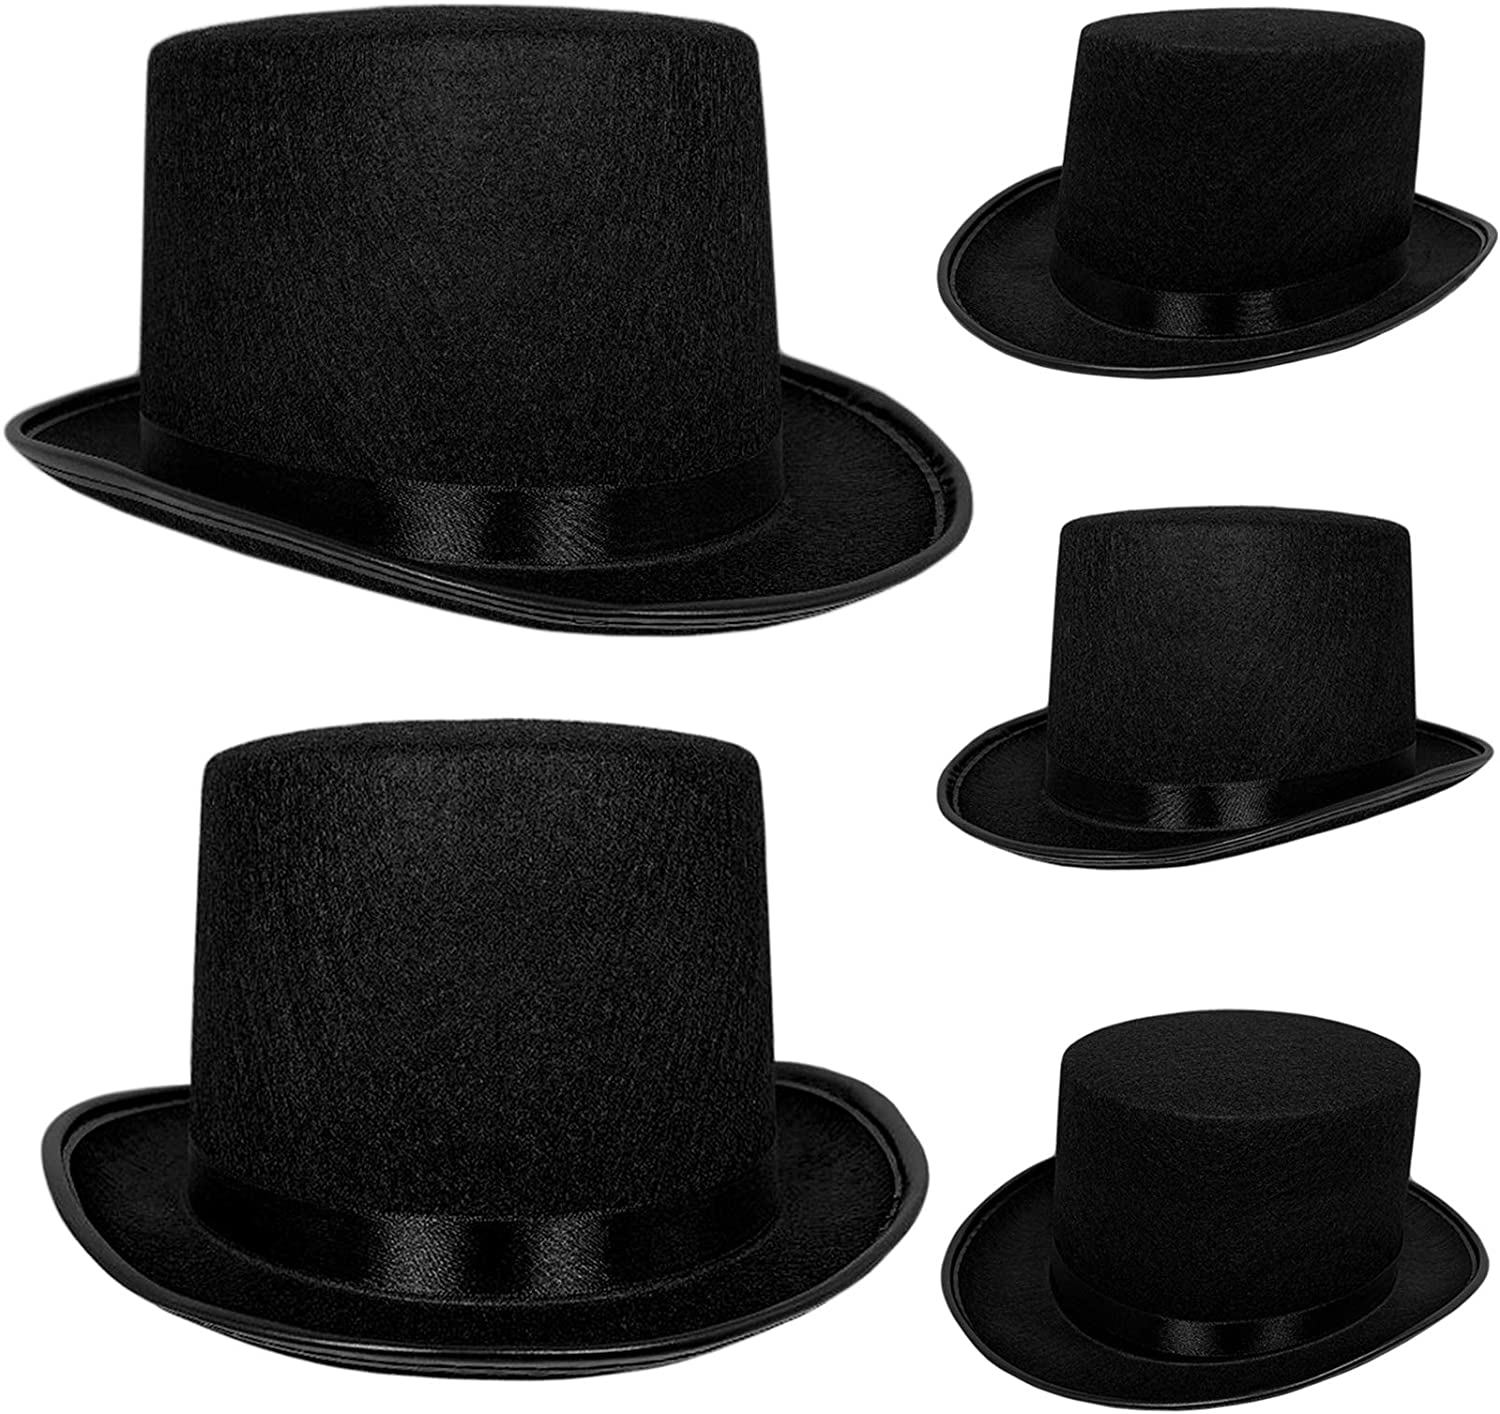 Top Hat Black Felt | One Size Magician Hat Costume | DIY Steampunk | Ultra Ringmaster Circus Hats | Dress Up Party Accessory | By Anapoliz: Toys & Games